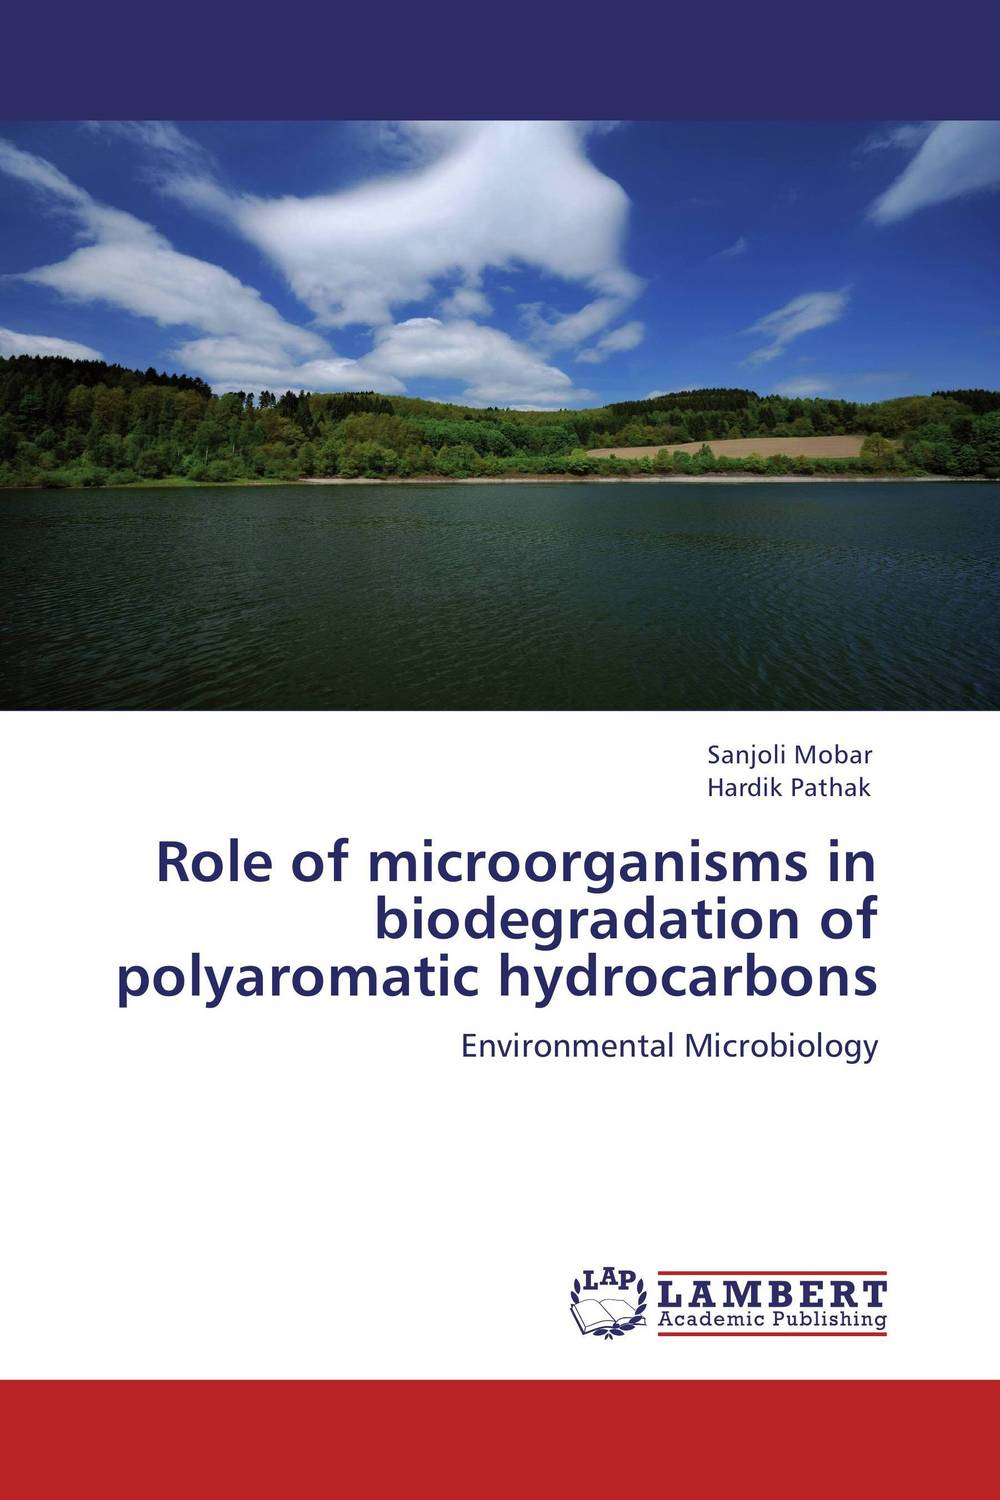 Role of microorganisms in biodegradation of polyaromatic hydrocarbons a role of tec a non receptor tyrosine kinase as apoptotic regulator